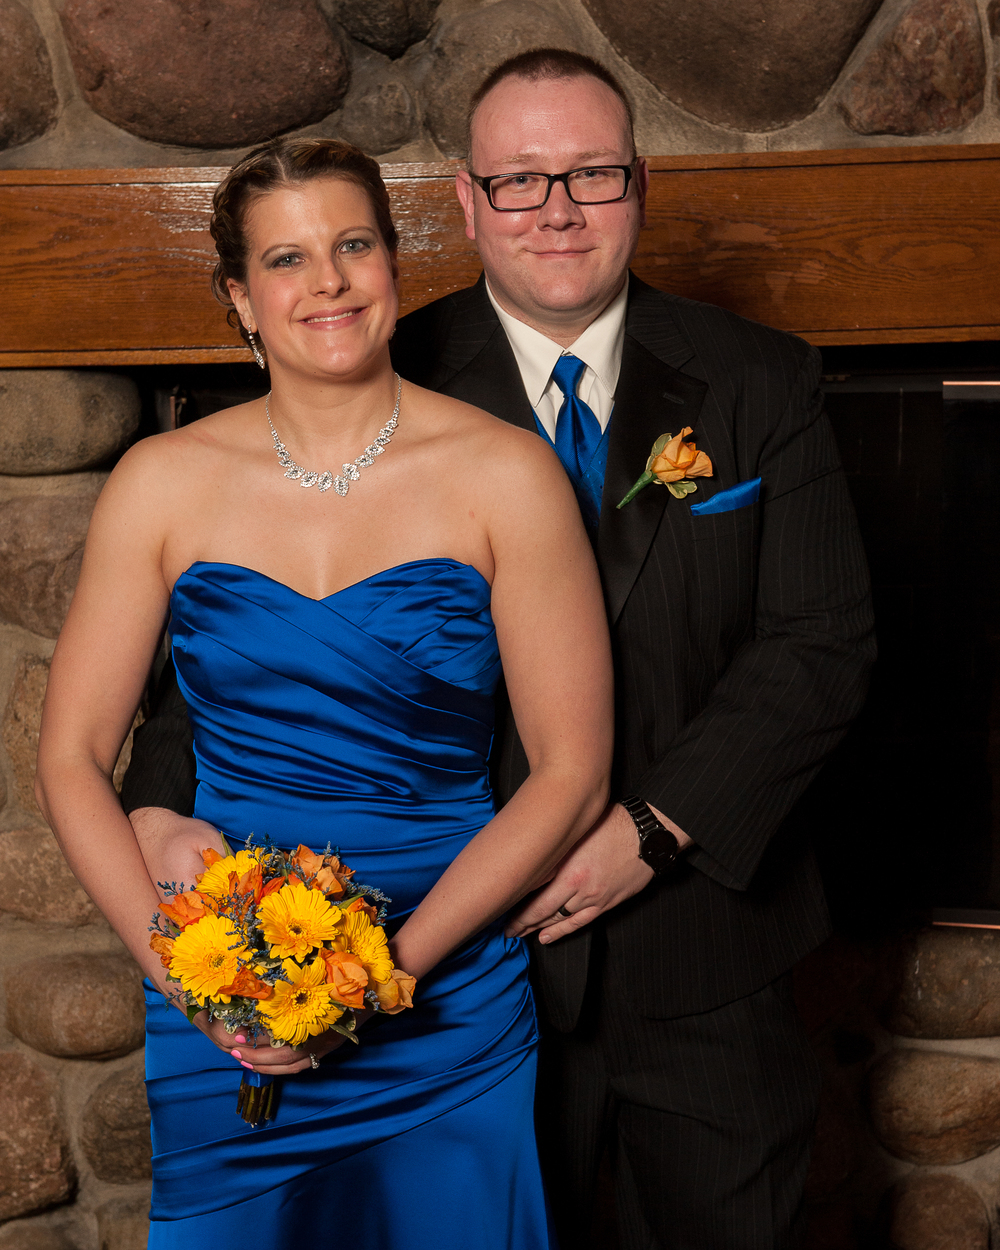 Doug & Becky's Wedding (201 of 276).jpg